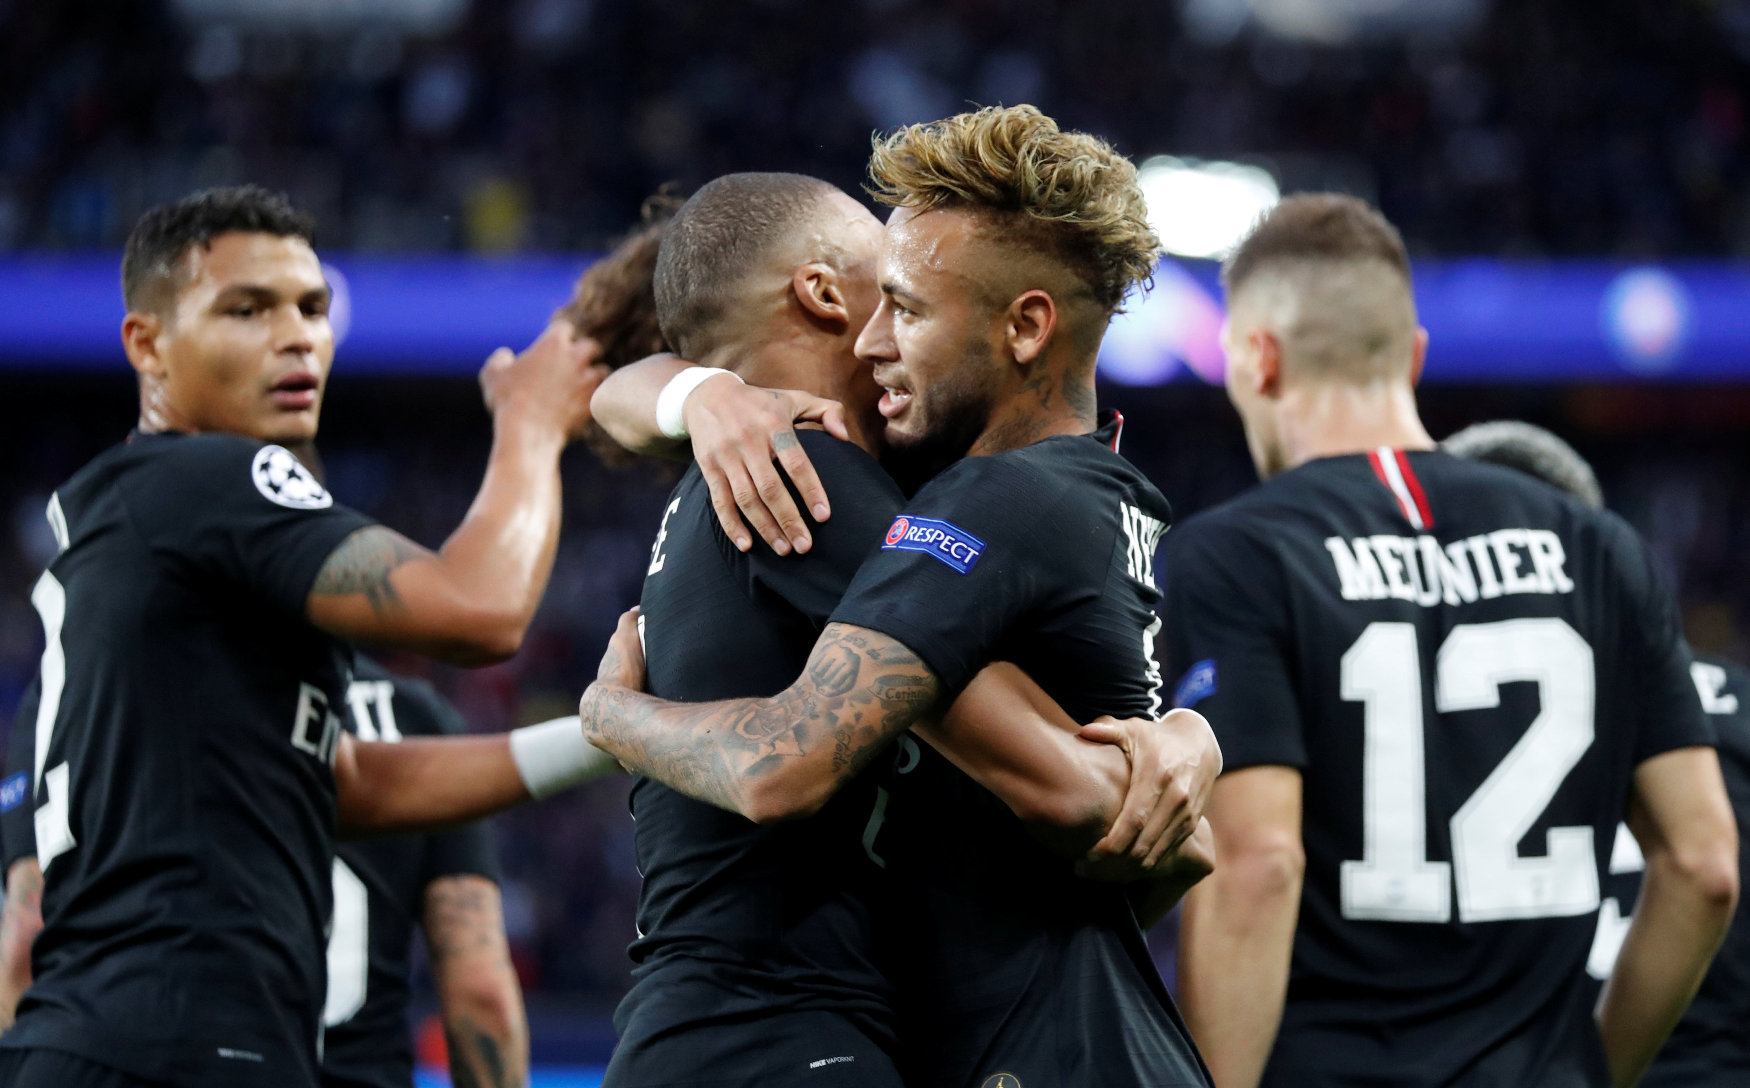 Soccer Football - Champions League - Group Stage - Group C - Paris St Germain v Crvena Zvezda - Parc des Princes, Paris, France - October 3, 2018  Paris St Germain's Neymar celebrates with Kylian Mbappe after scoring their second goal   REUTERS/Charles Platiau